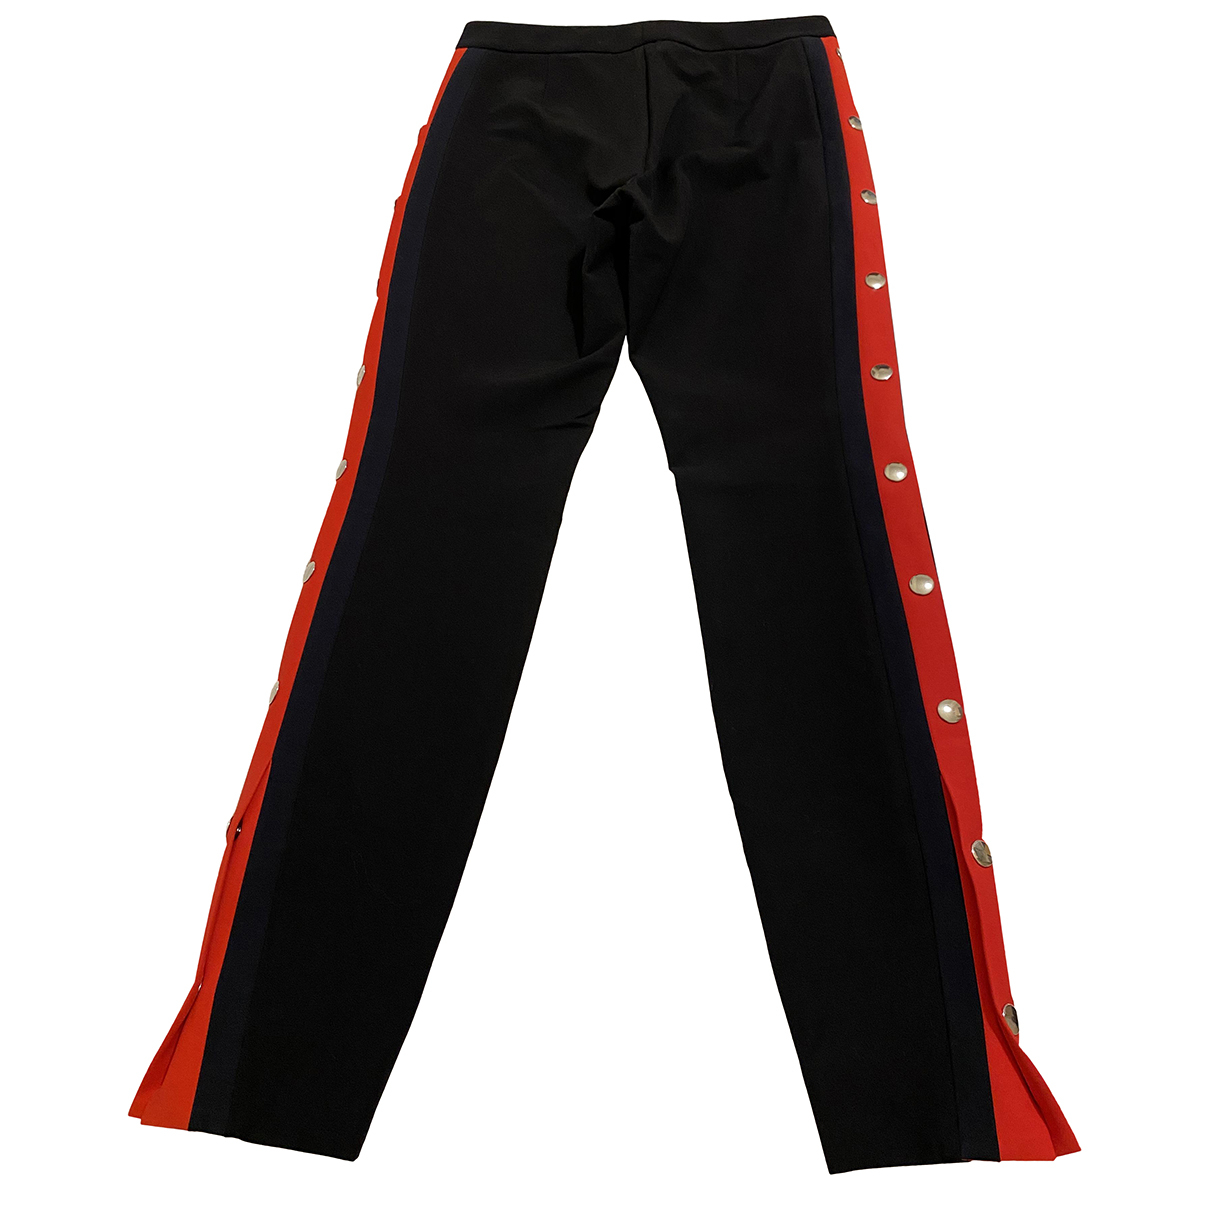 Gucci N Black Spandex Trousers for Women S International